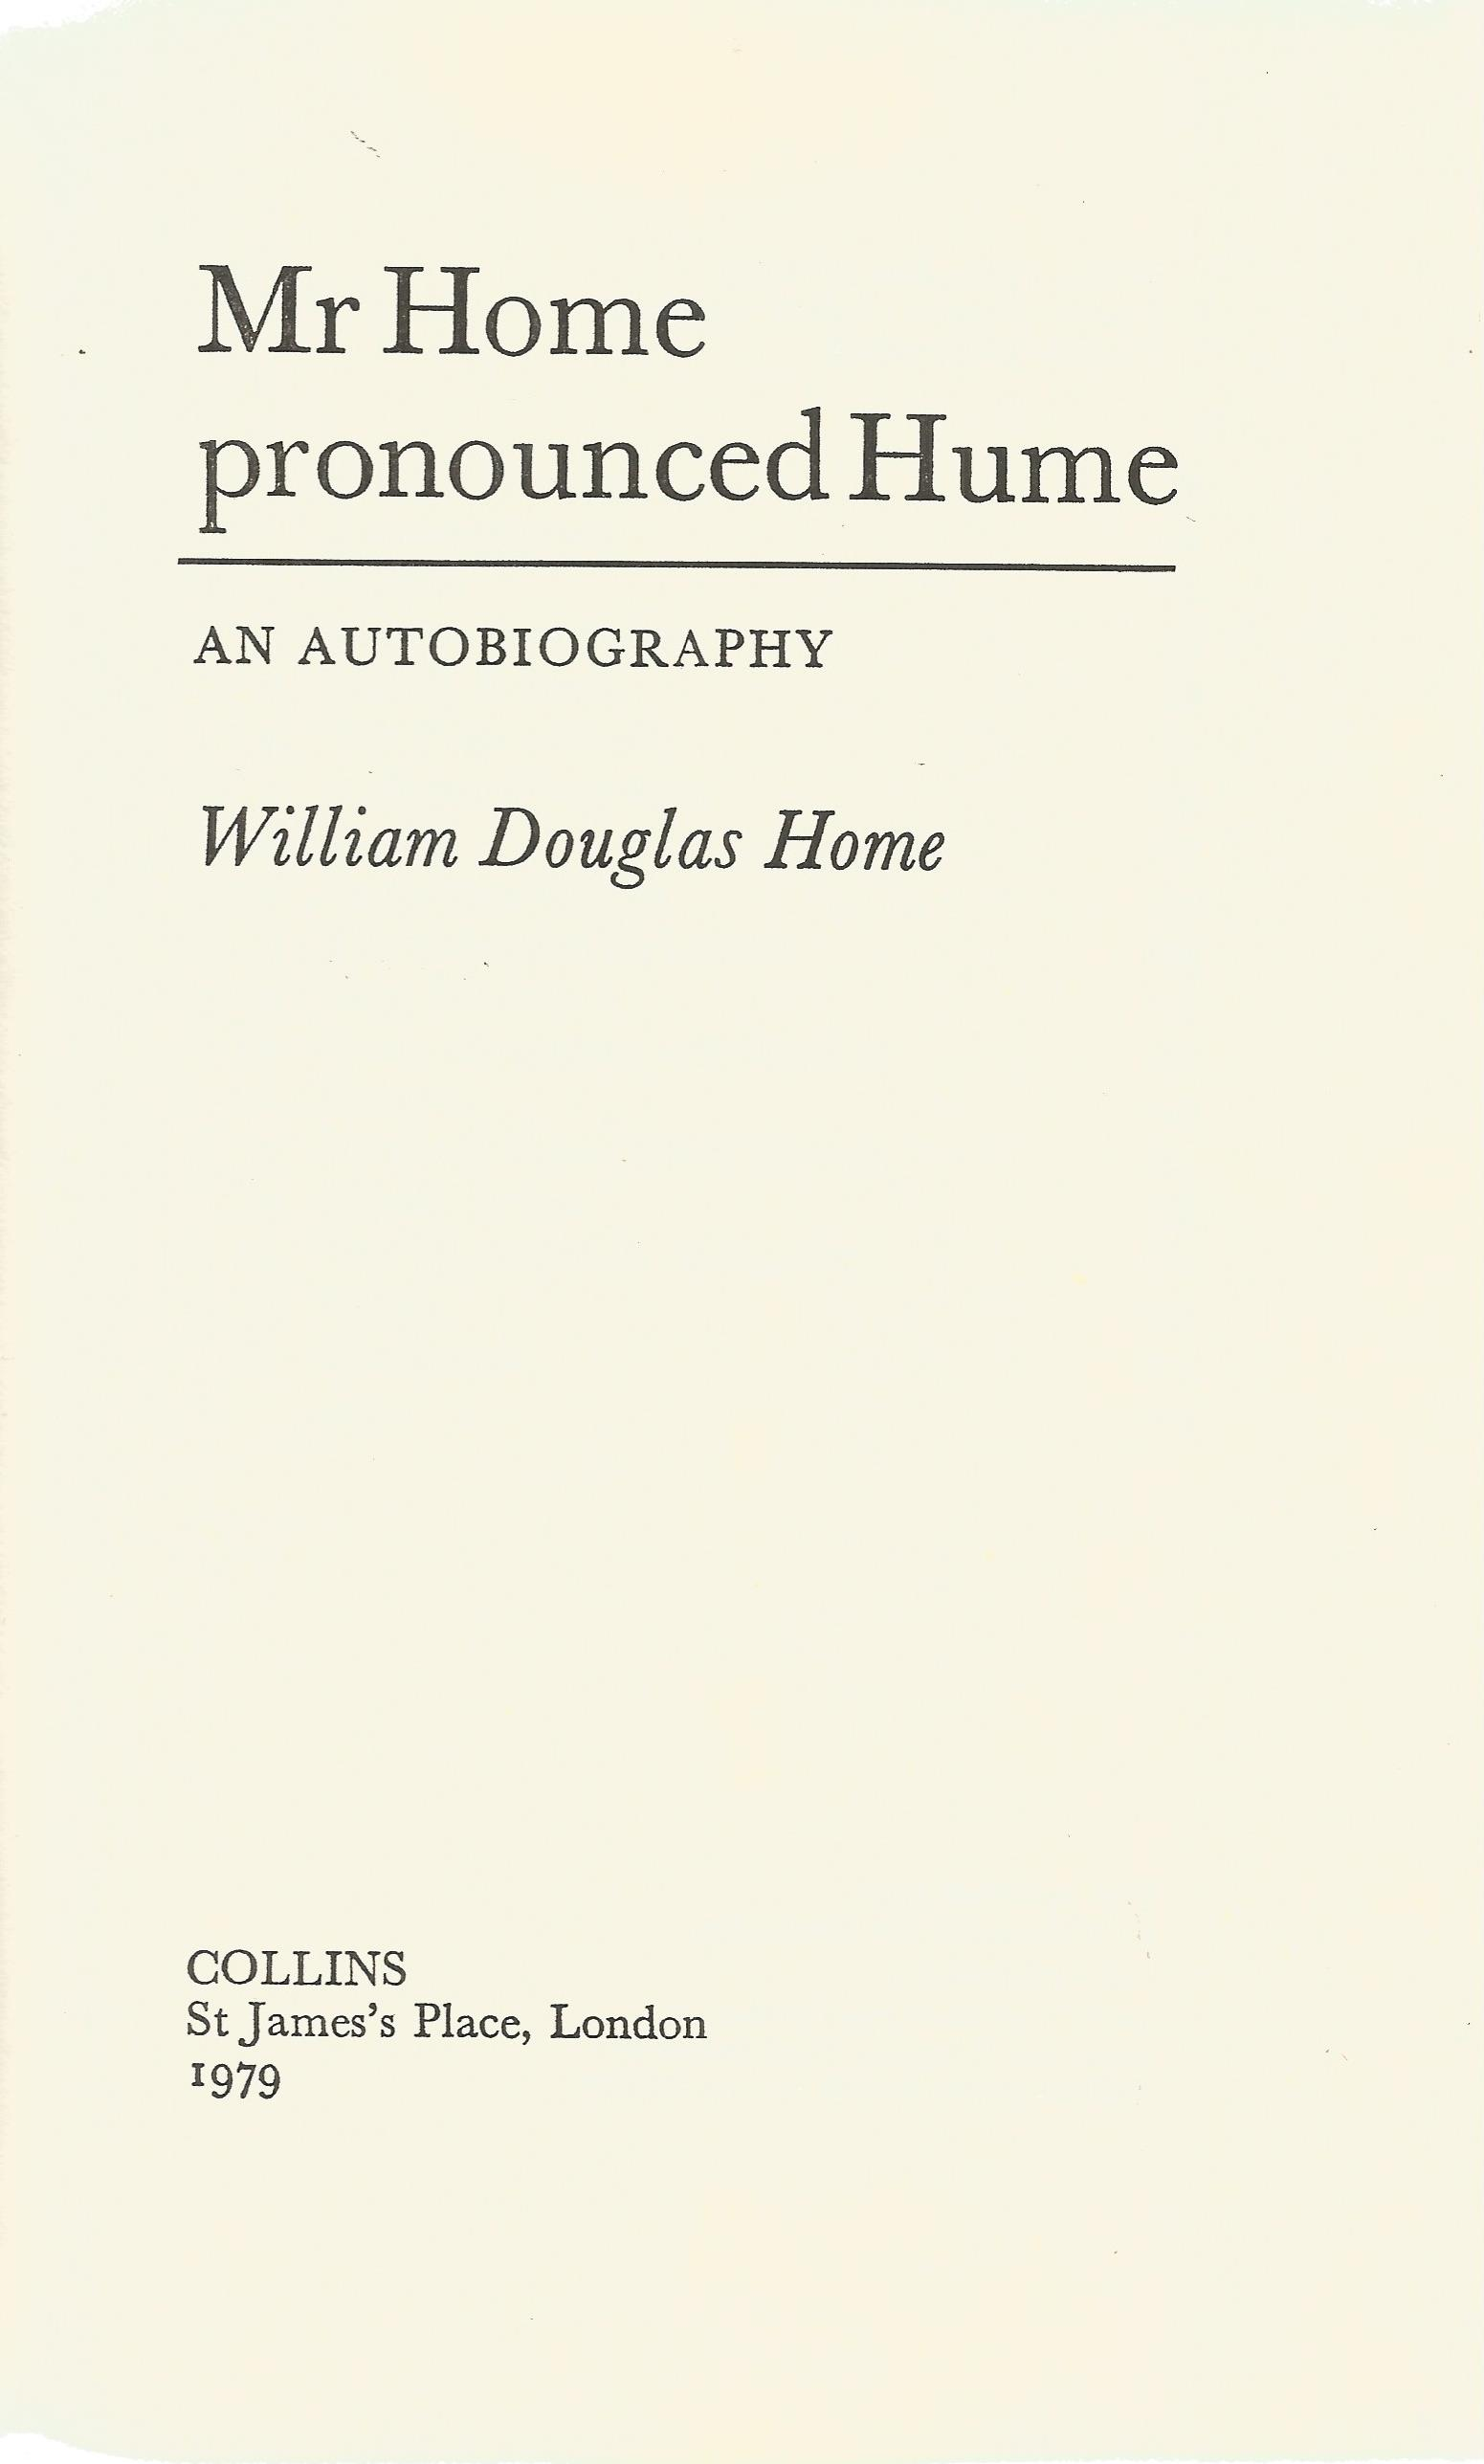 William Douglas Home Signed hardback book Mr Home pronounced Hume An Autobiography 1979 First - Image 3 of 3